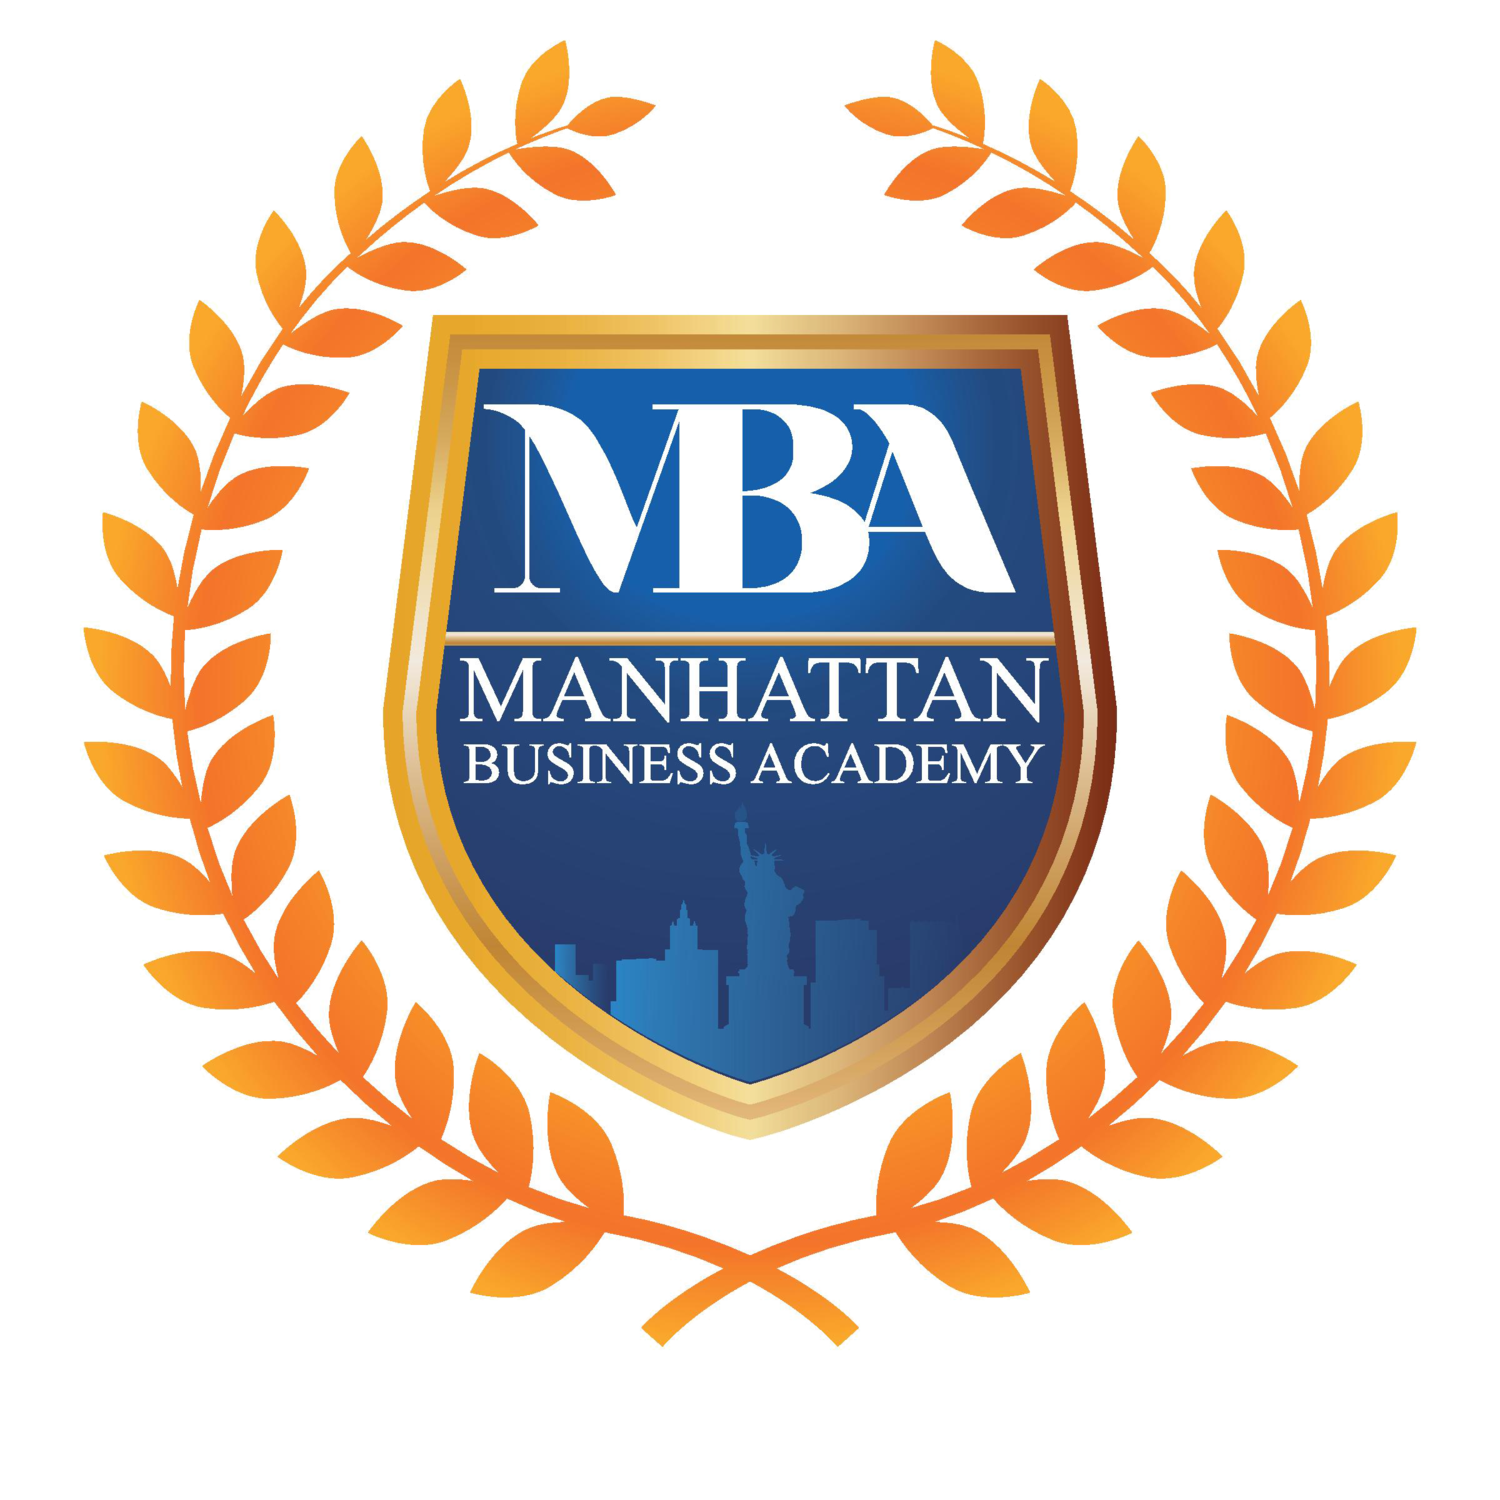 MANHATTAN BUSINESS ACADEMY